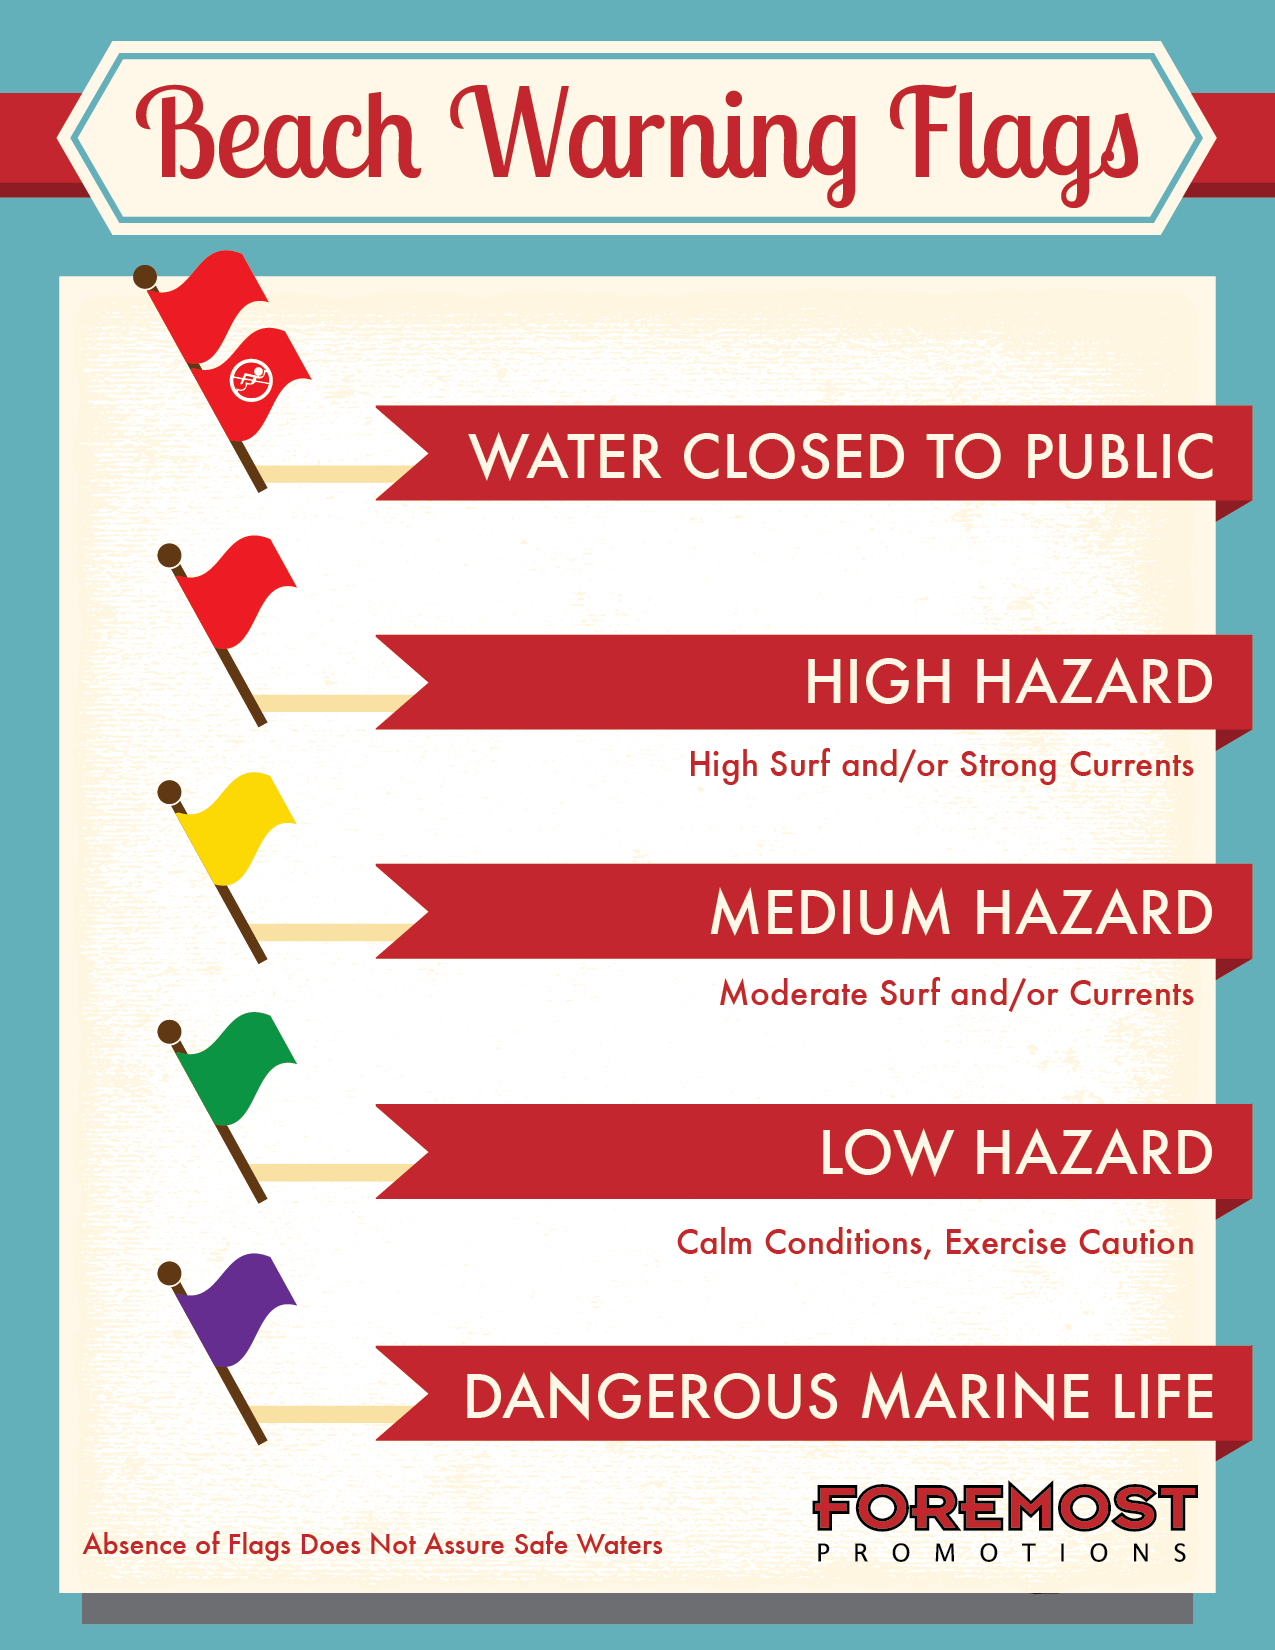 Beach Safety Knowing The Warning Flags Foremost Promotions Beach Safety Neptune Beach Beach